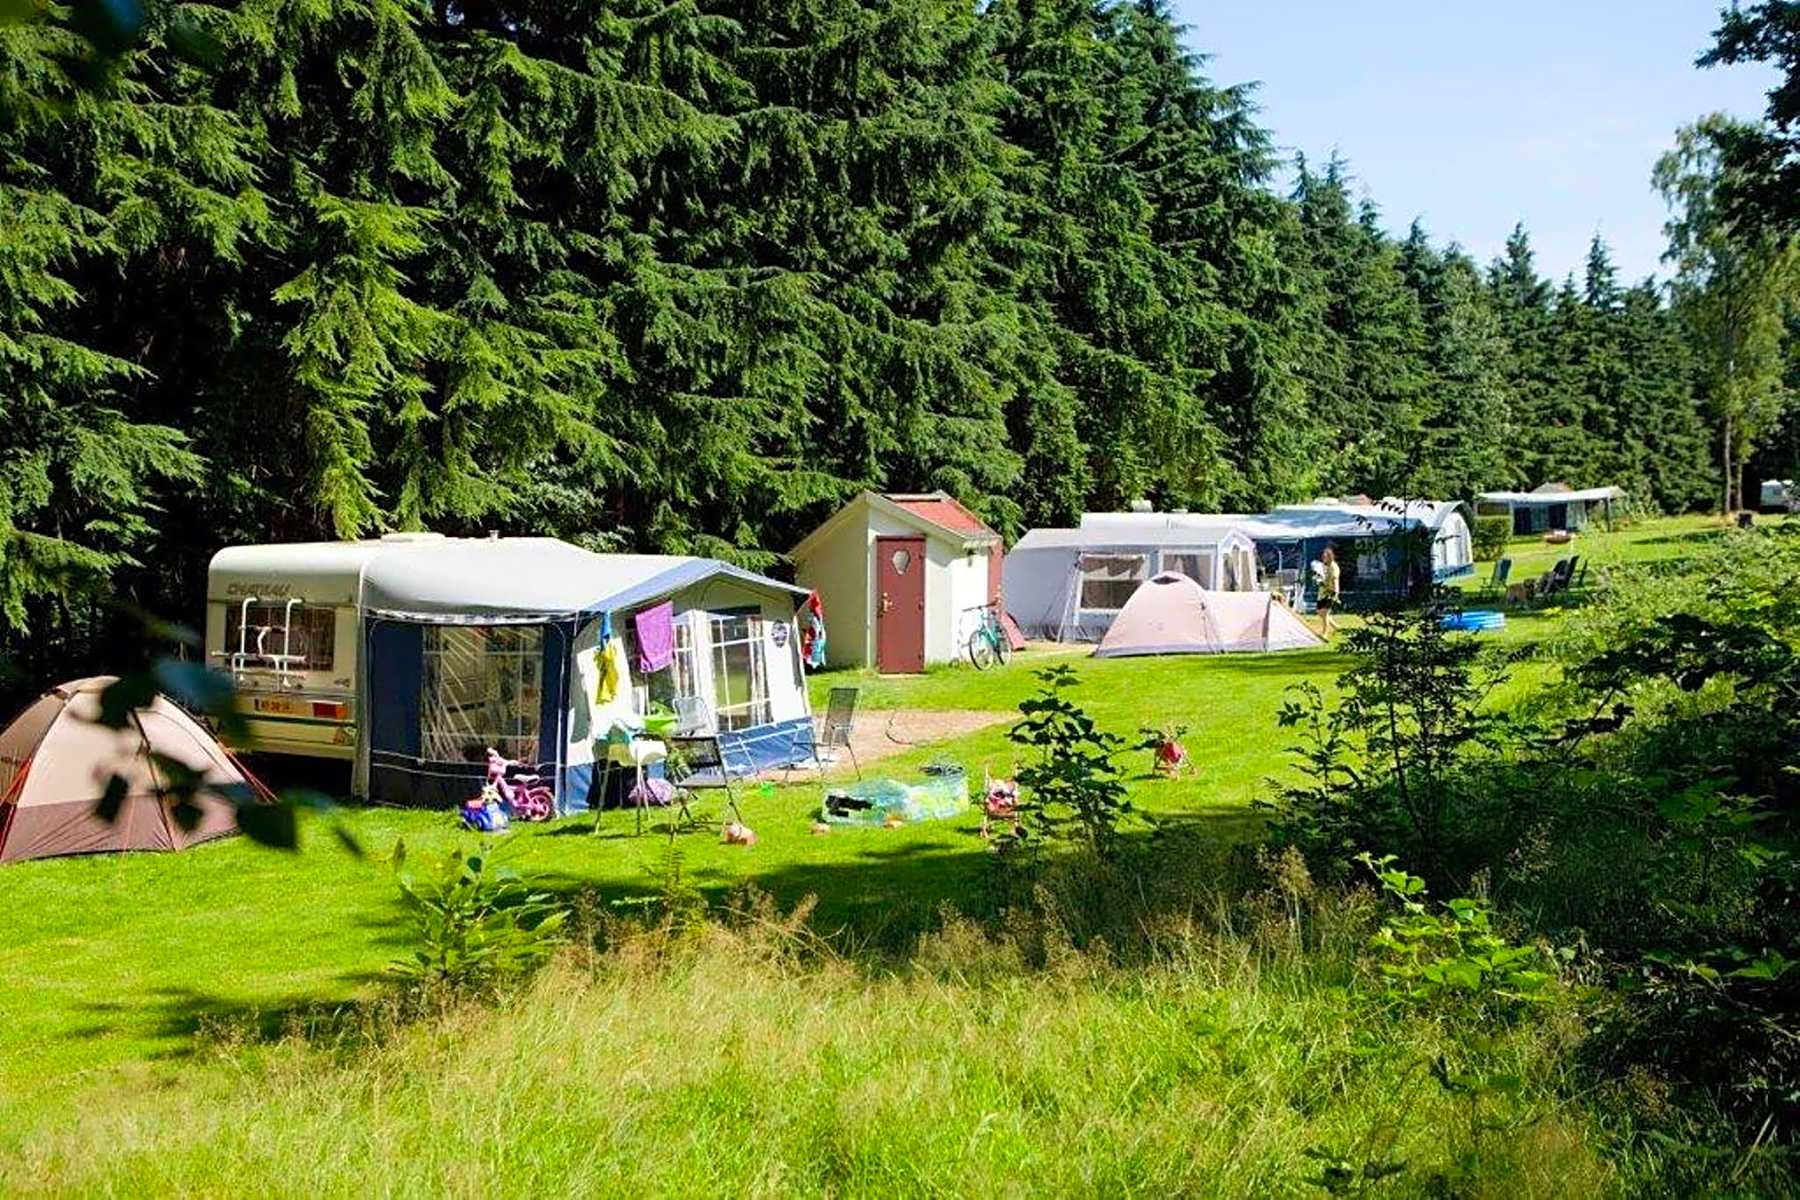 Camping Apeldoorn Zwembad Brian C S Review Of Camping Aan Veluwe On Pitchup